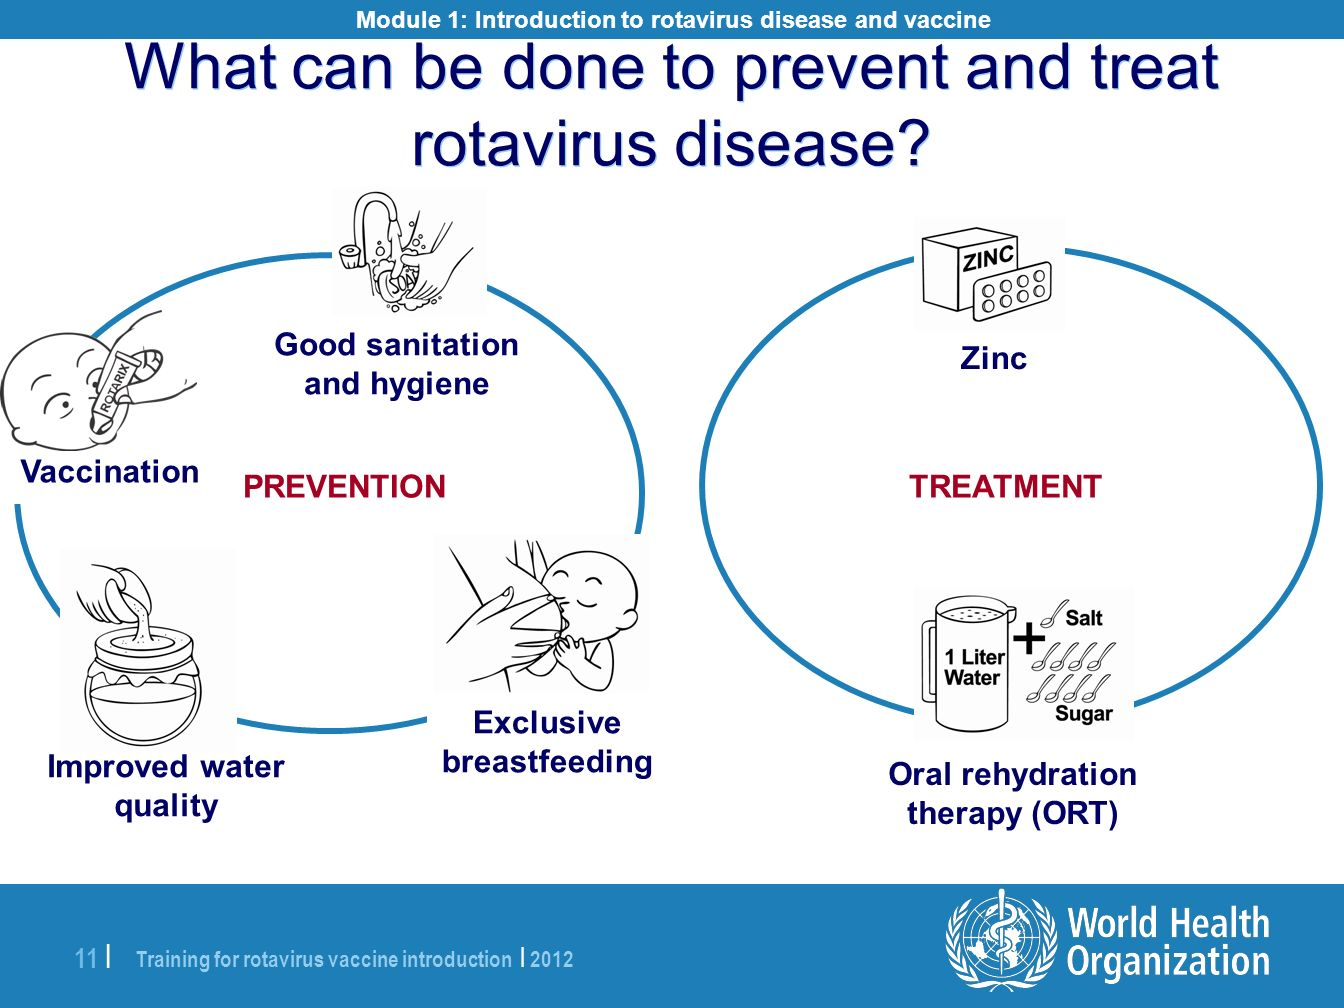 Training for rotavirus vaccine introduction | 2012 11 | Module 1: Introduction to rotavirus disease and vaccine Good sanitation and hygiene Exclusive